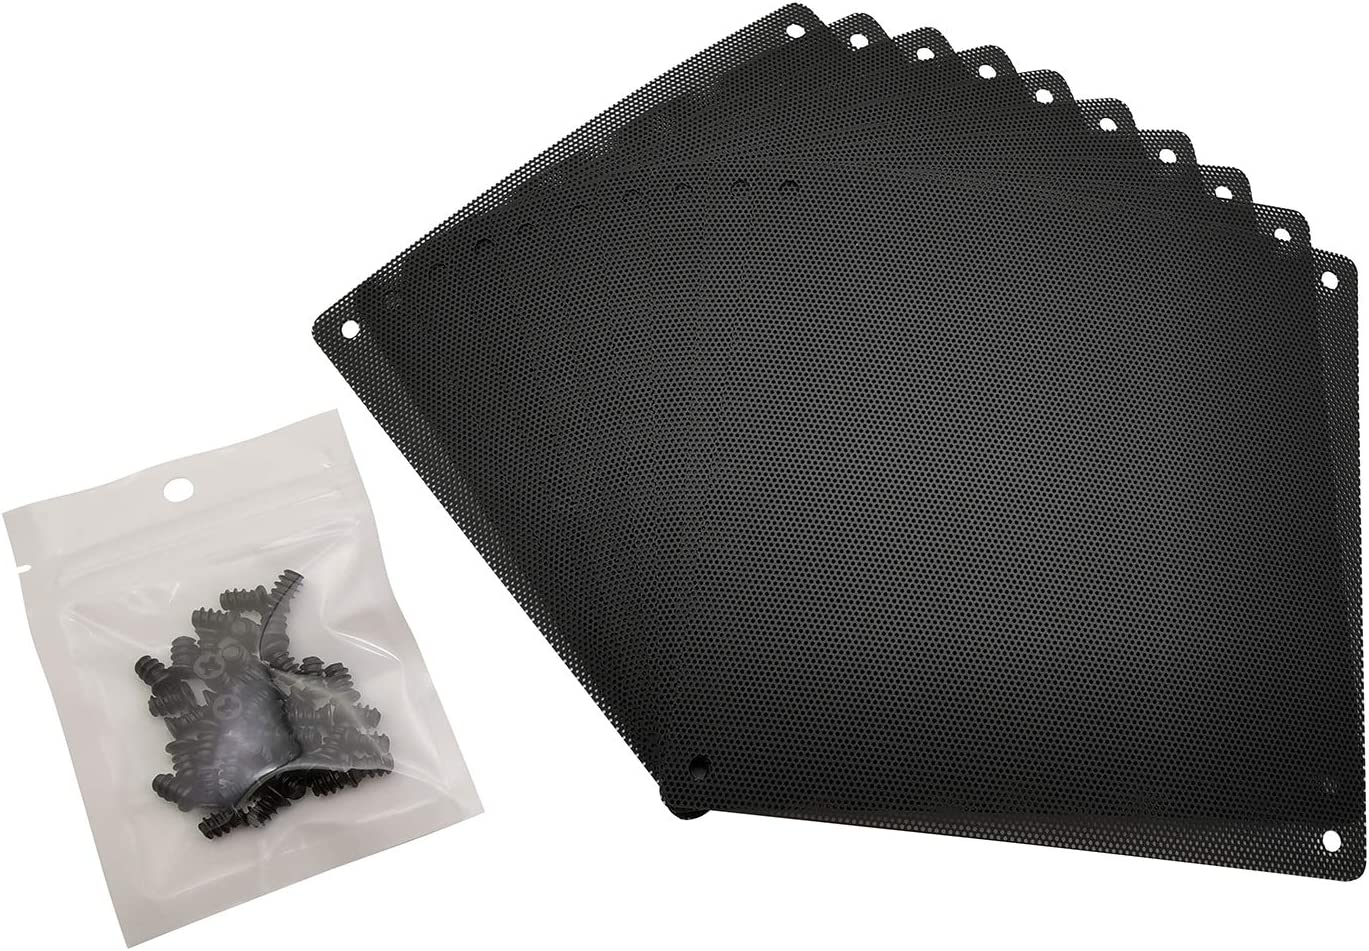 120mm PC Computer Case Fan Dust Filter Screen Dustproof Case Cover with Screws, Ultra Fine PVC Mesh, Black Color - 10 Pack